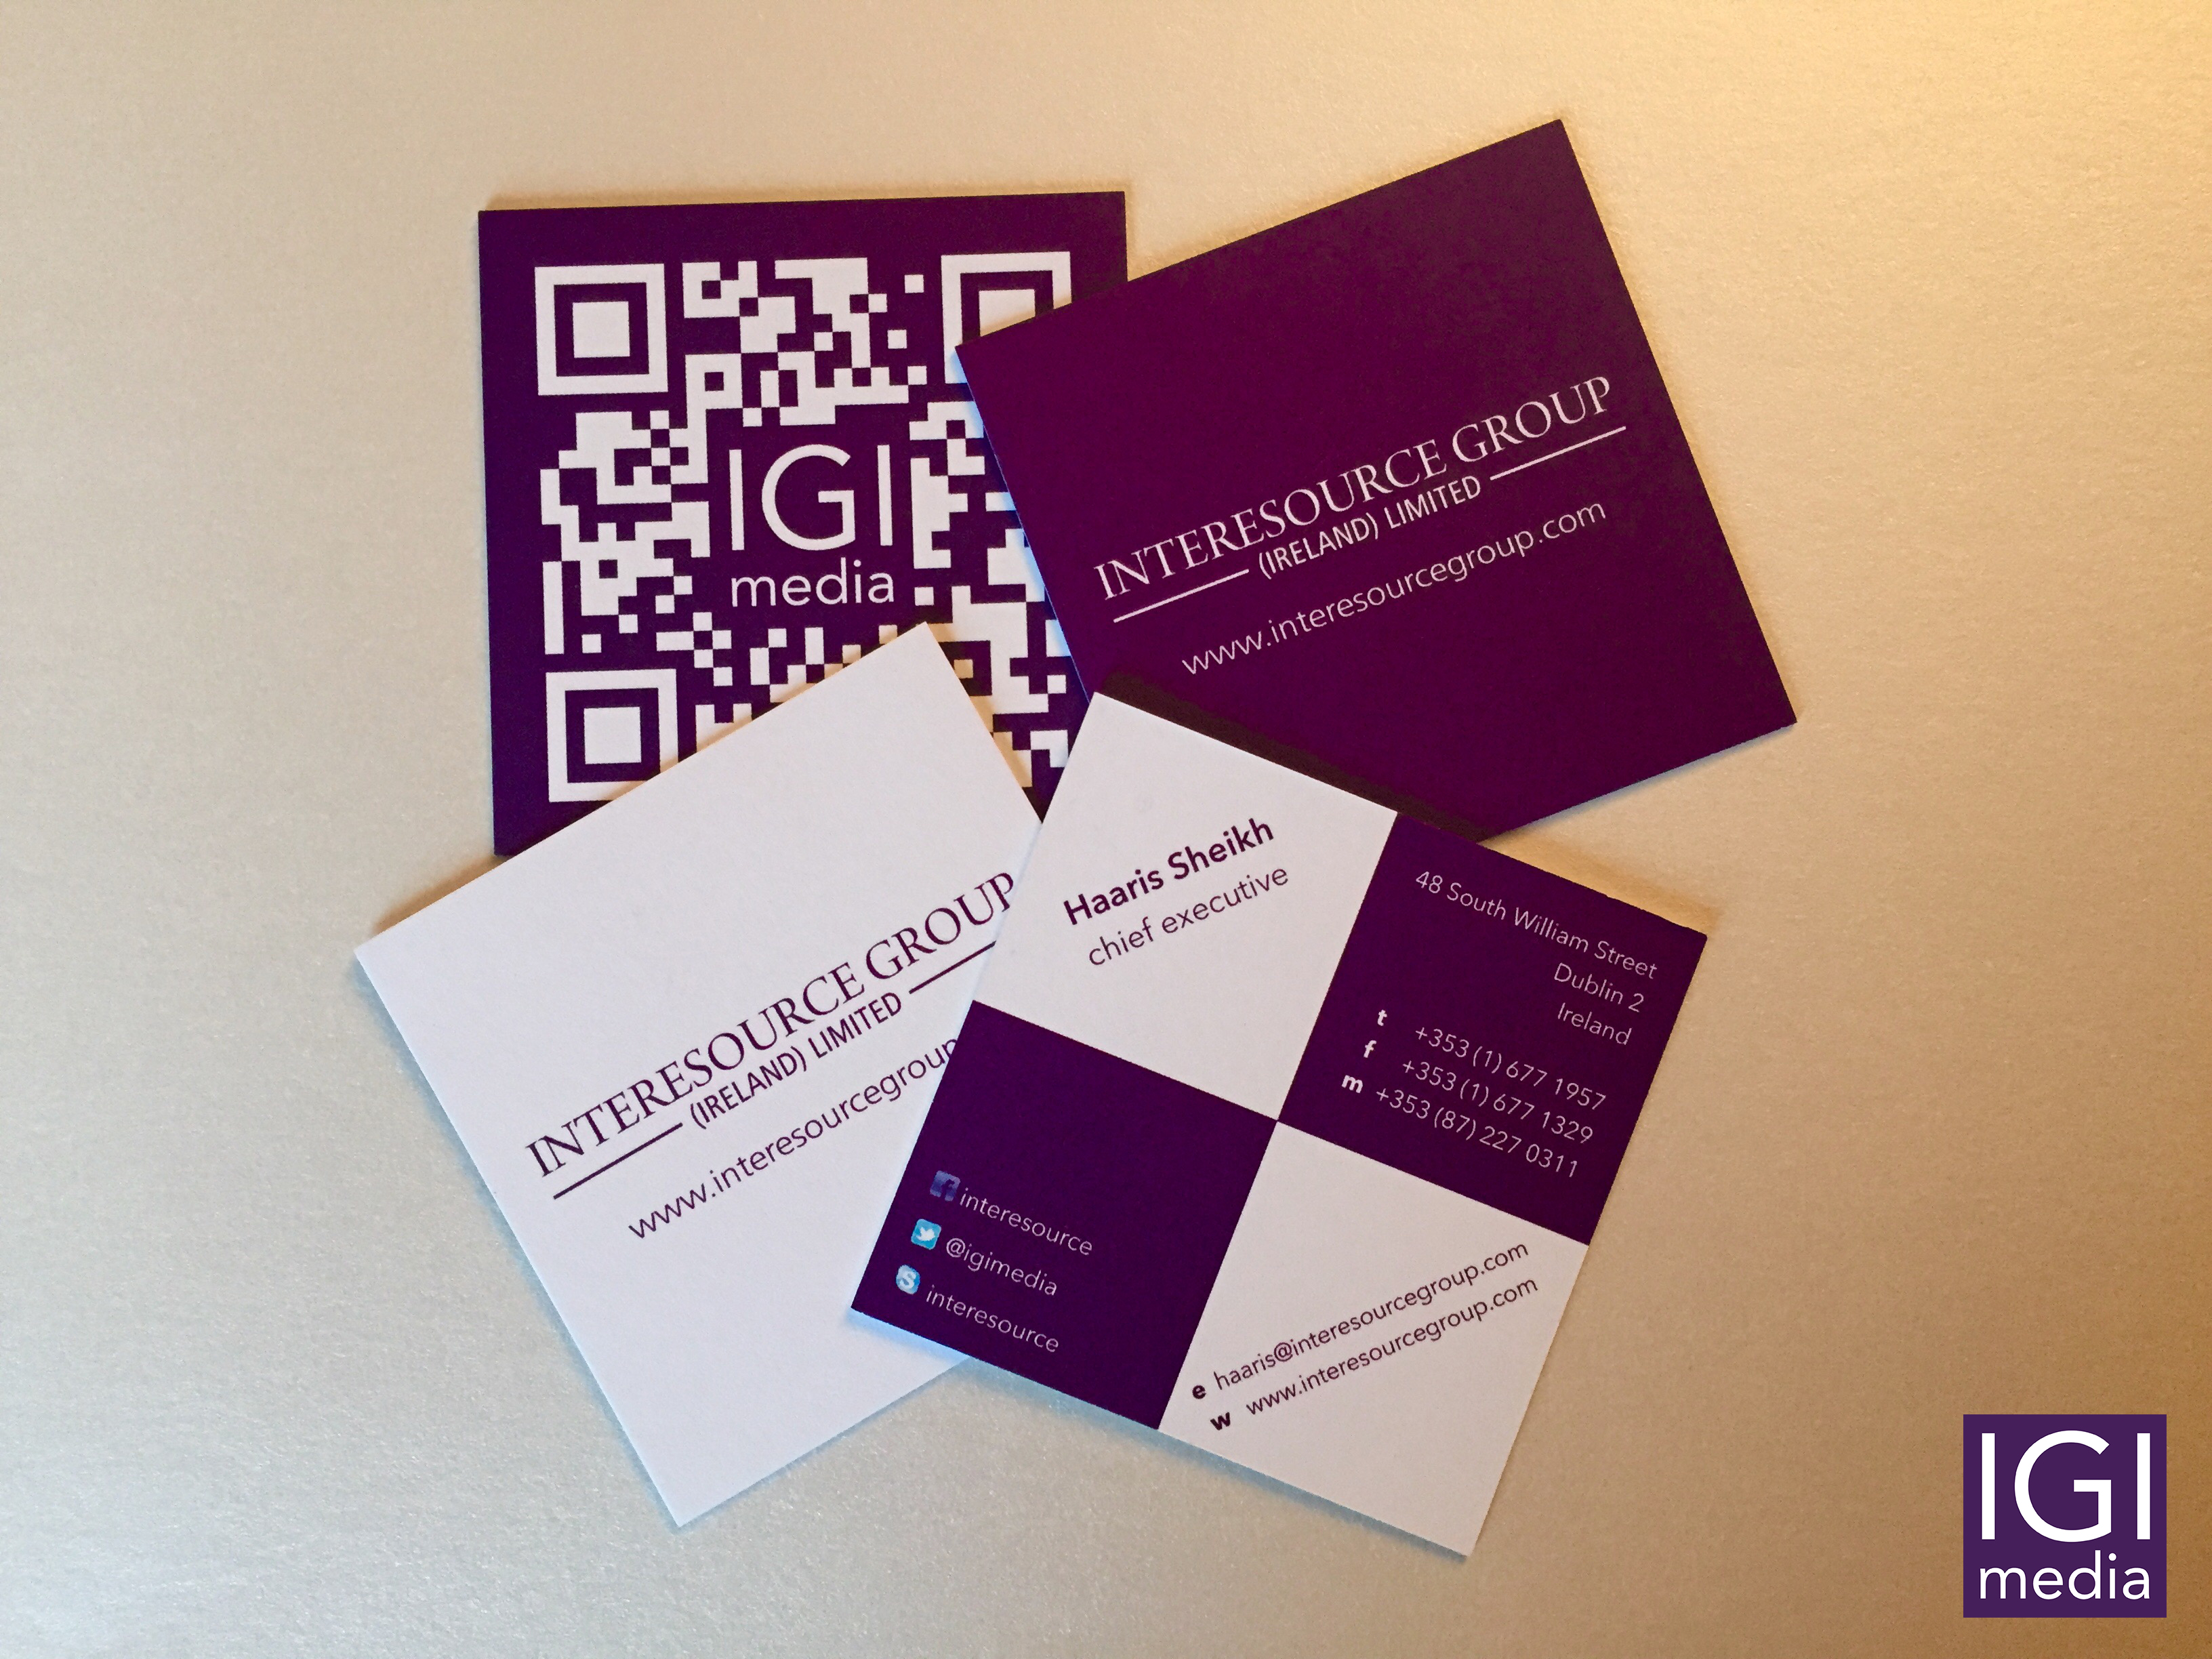 Sublimely elegant luxurious square business cards interesource cards reheart Image collections